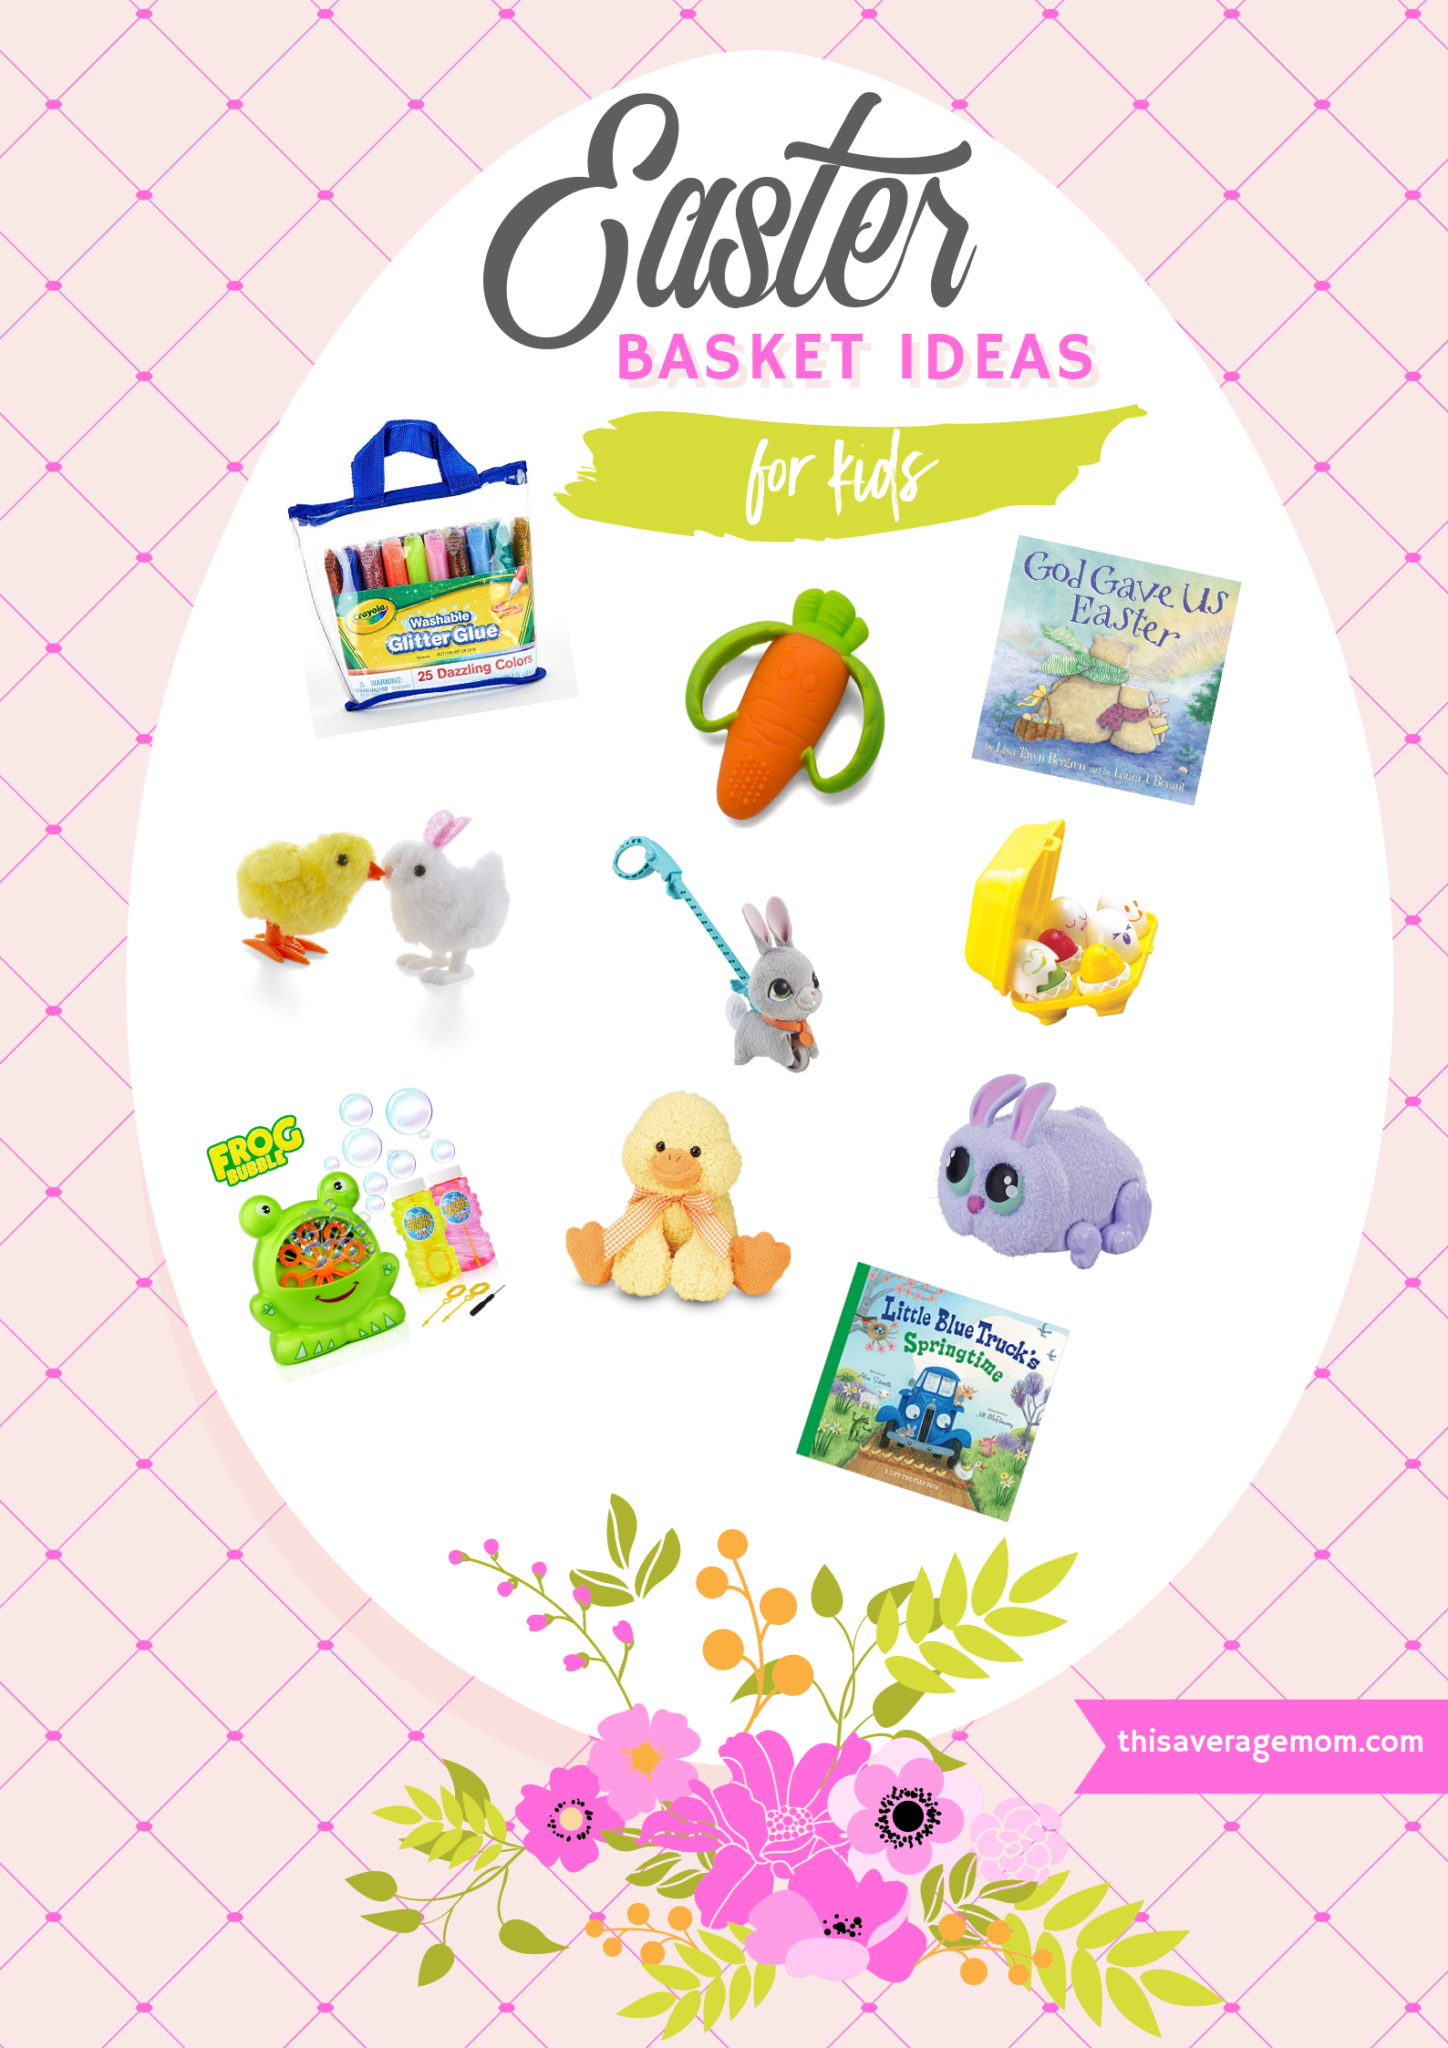 Not sure what the Easter Bunny should put in the kids' Easter Baskets? I've got you covered with these toys, books, and stuffed animals! #easter #easterbunny #easterbasket #springtime